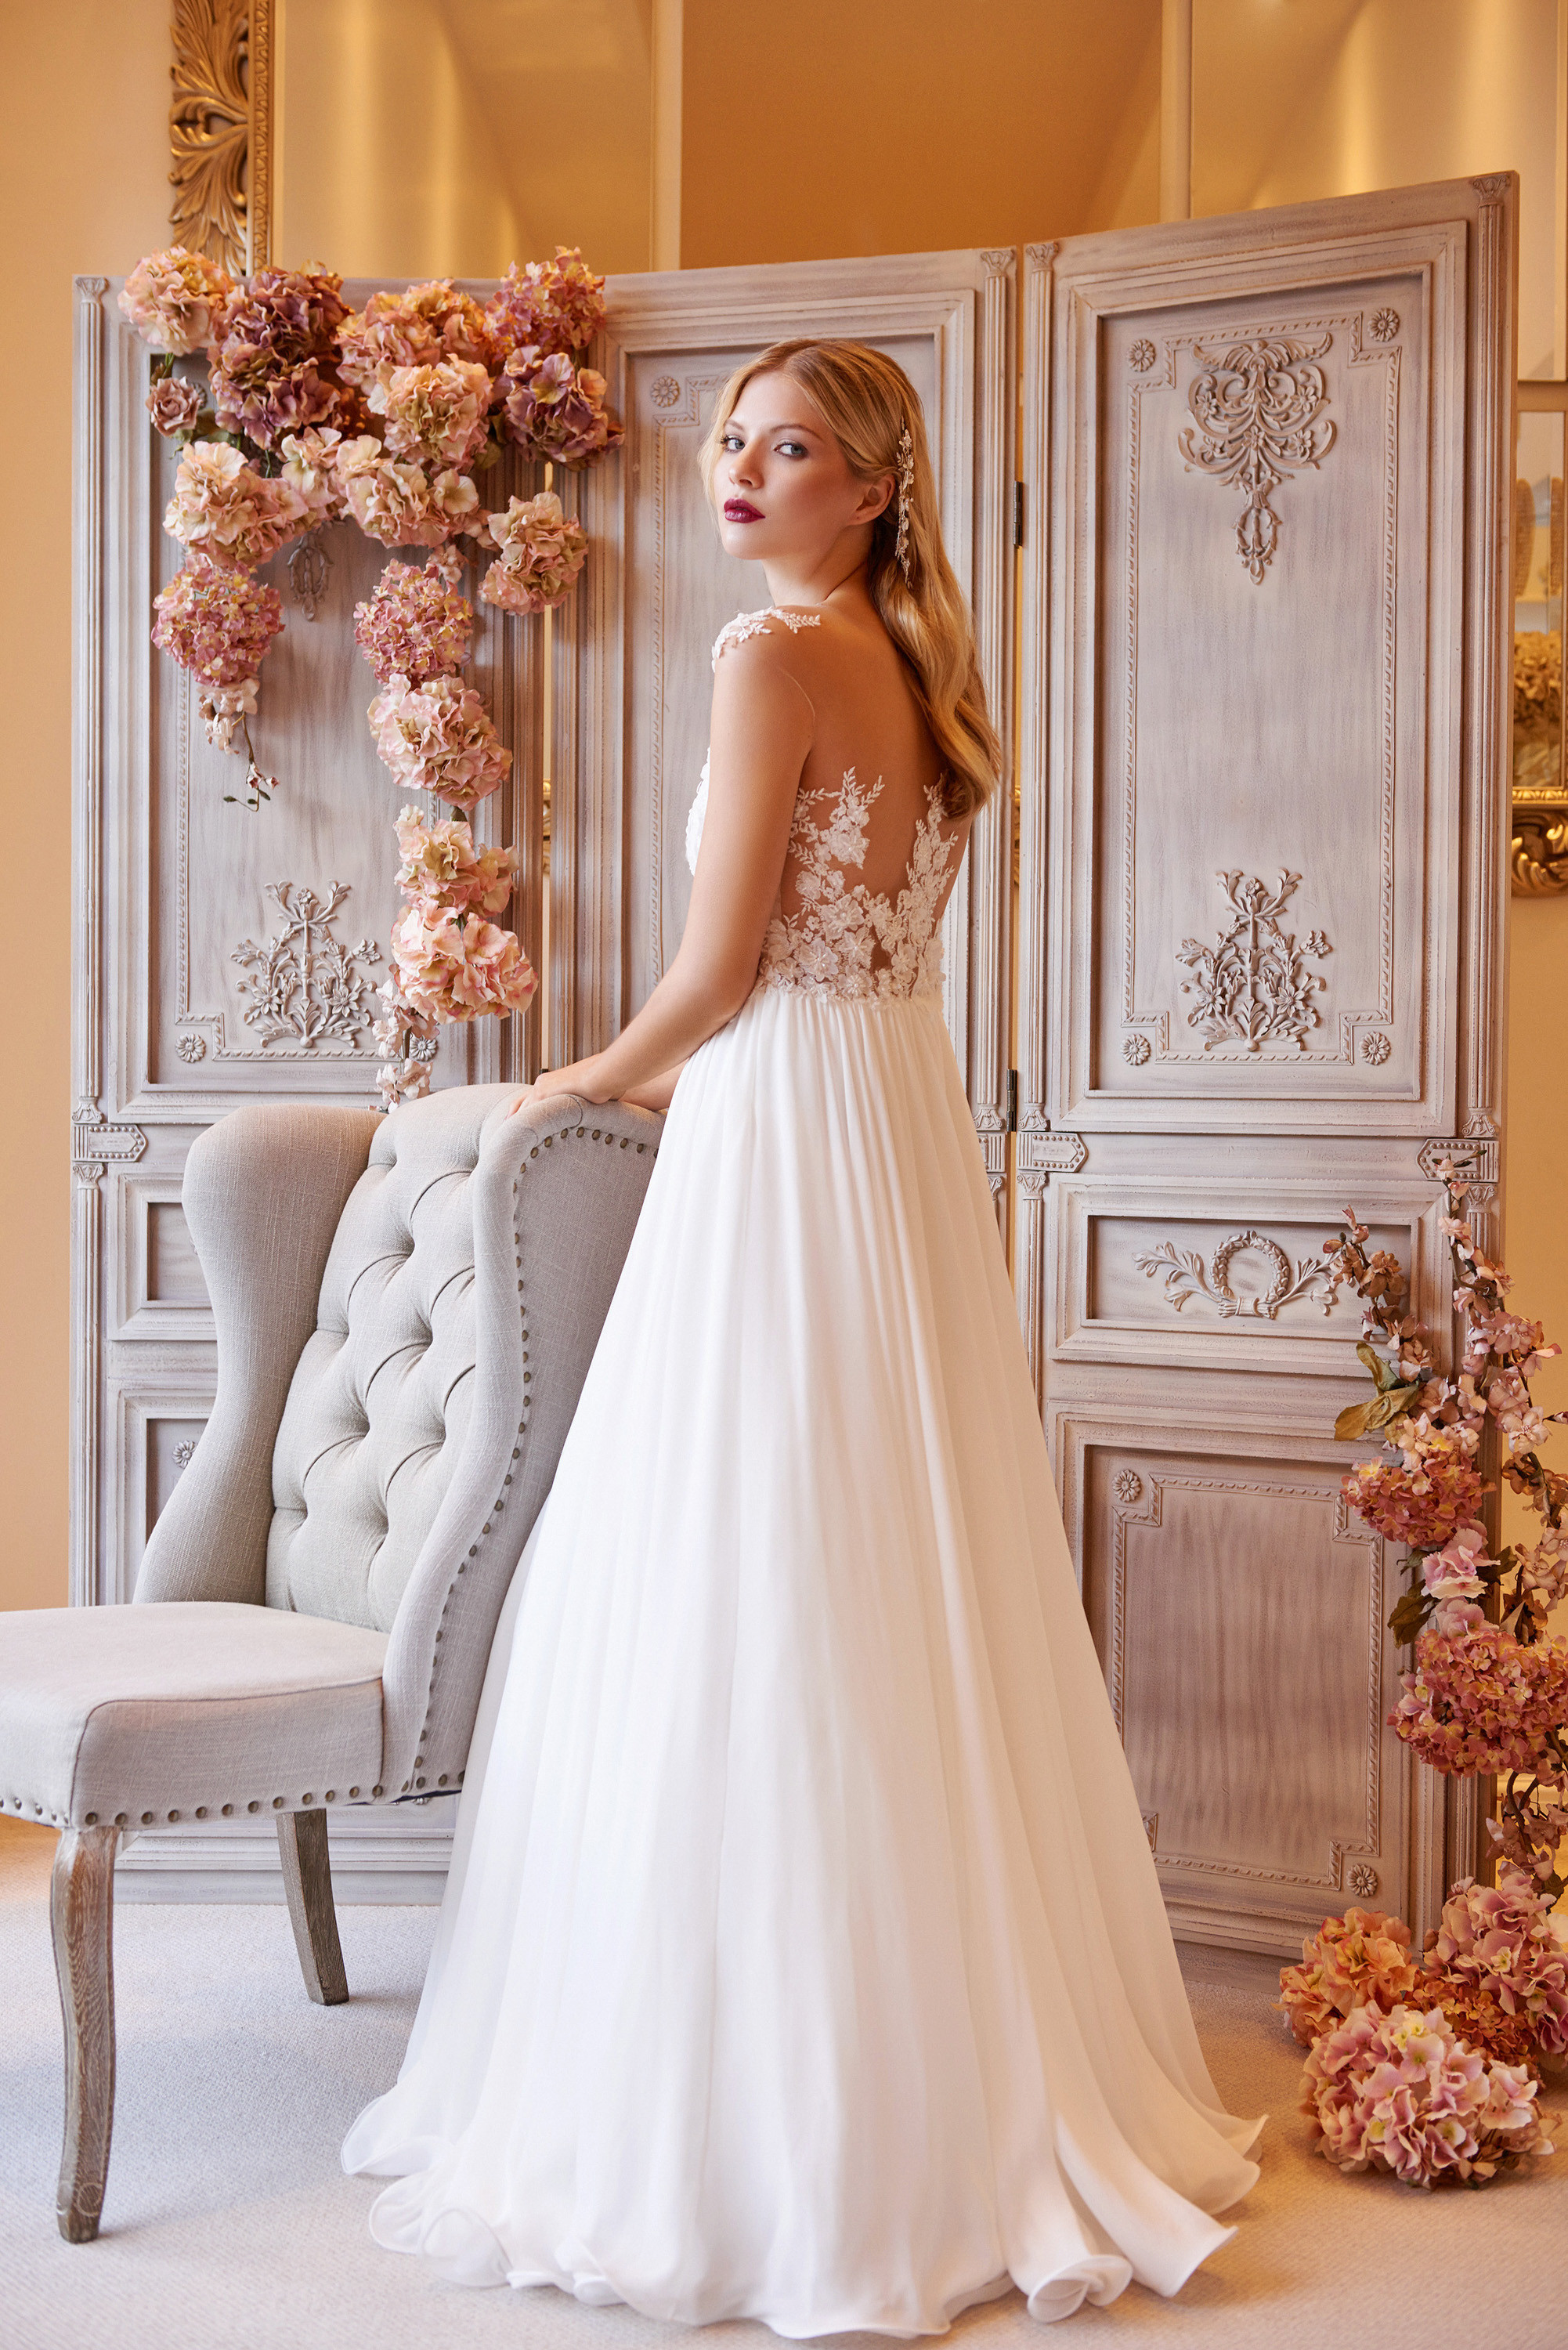 Floral 3d Lace A Line Wedding Dress Floaty Skirt London And Glasgow